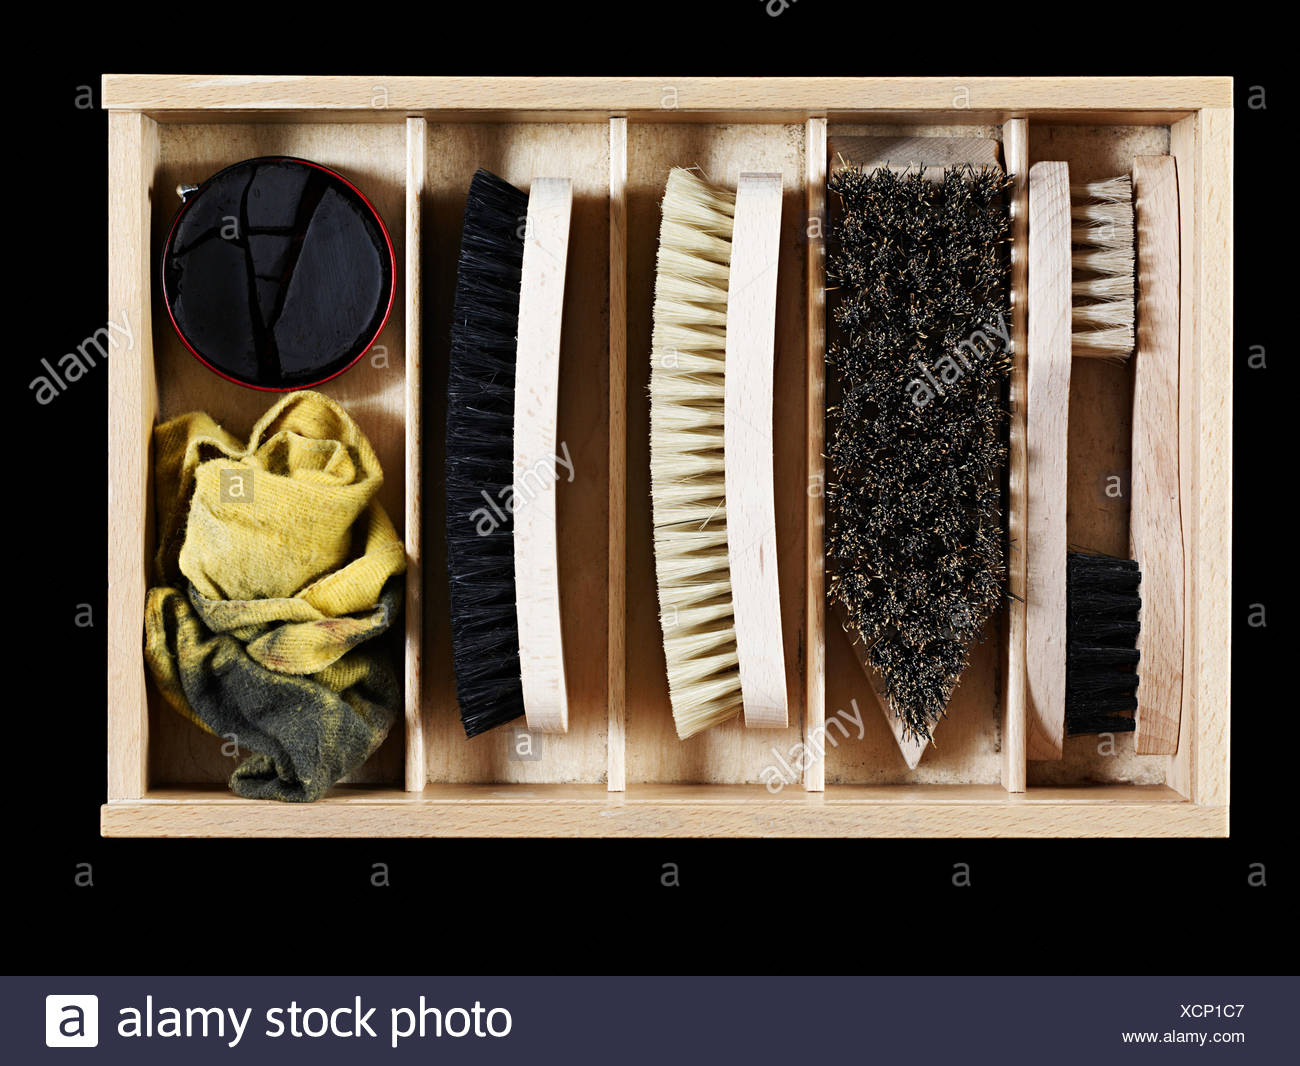 Shoe polish and brushes in a box - Stock Image